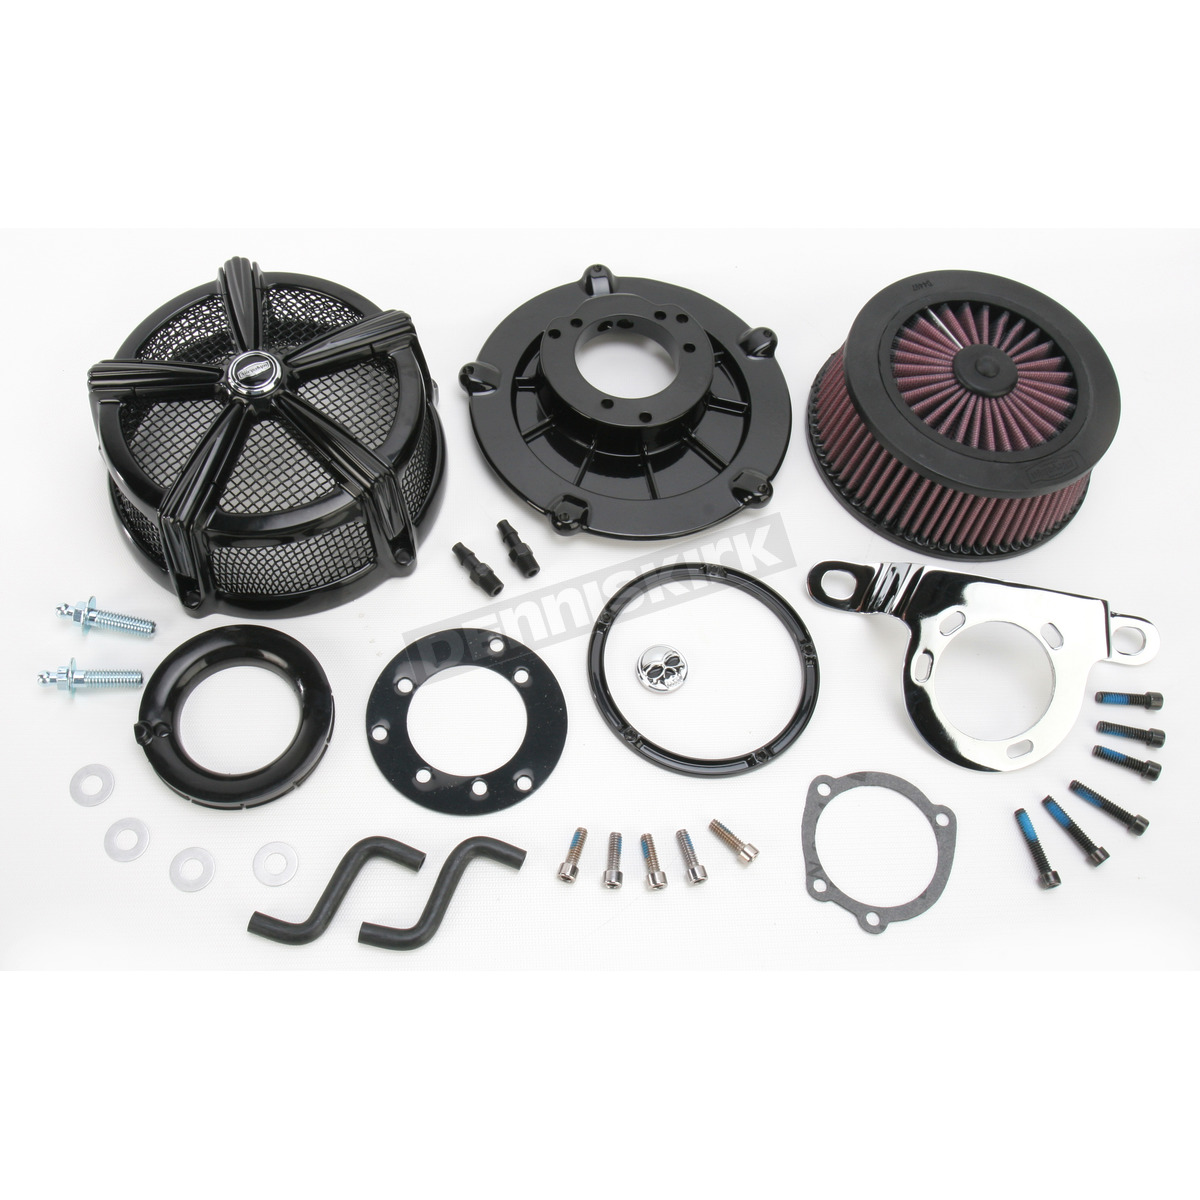 Kuryakyn Hi-Five Mach 2 Air Cleaner Black 9553